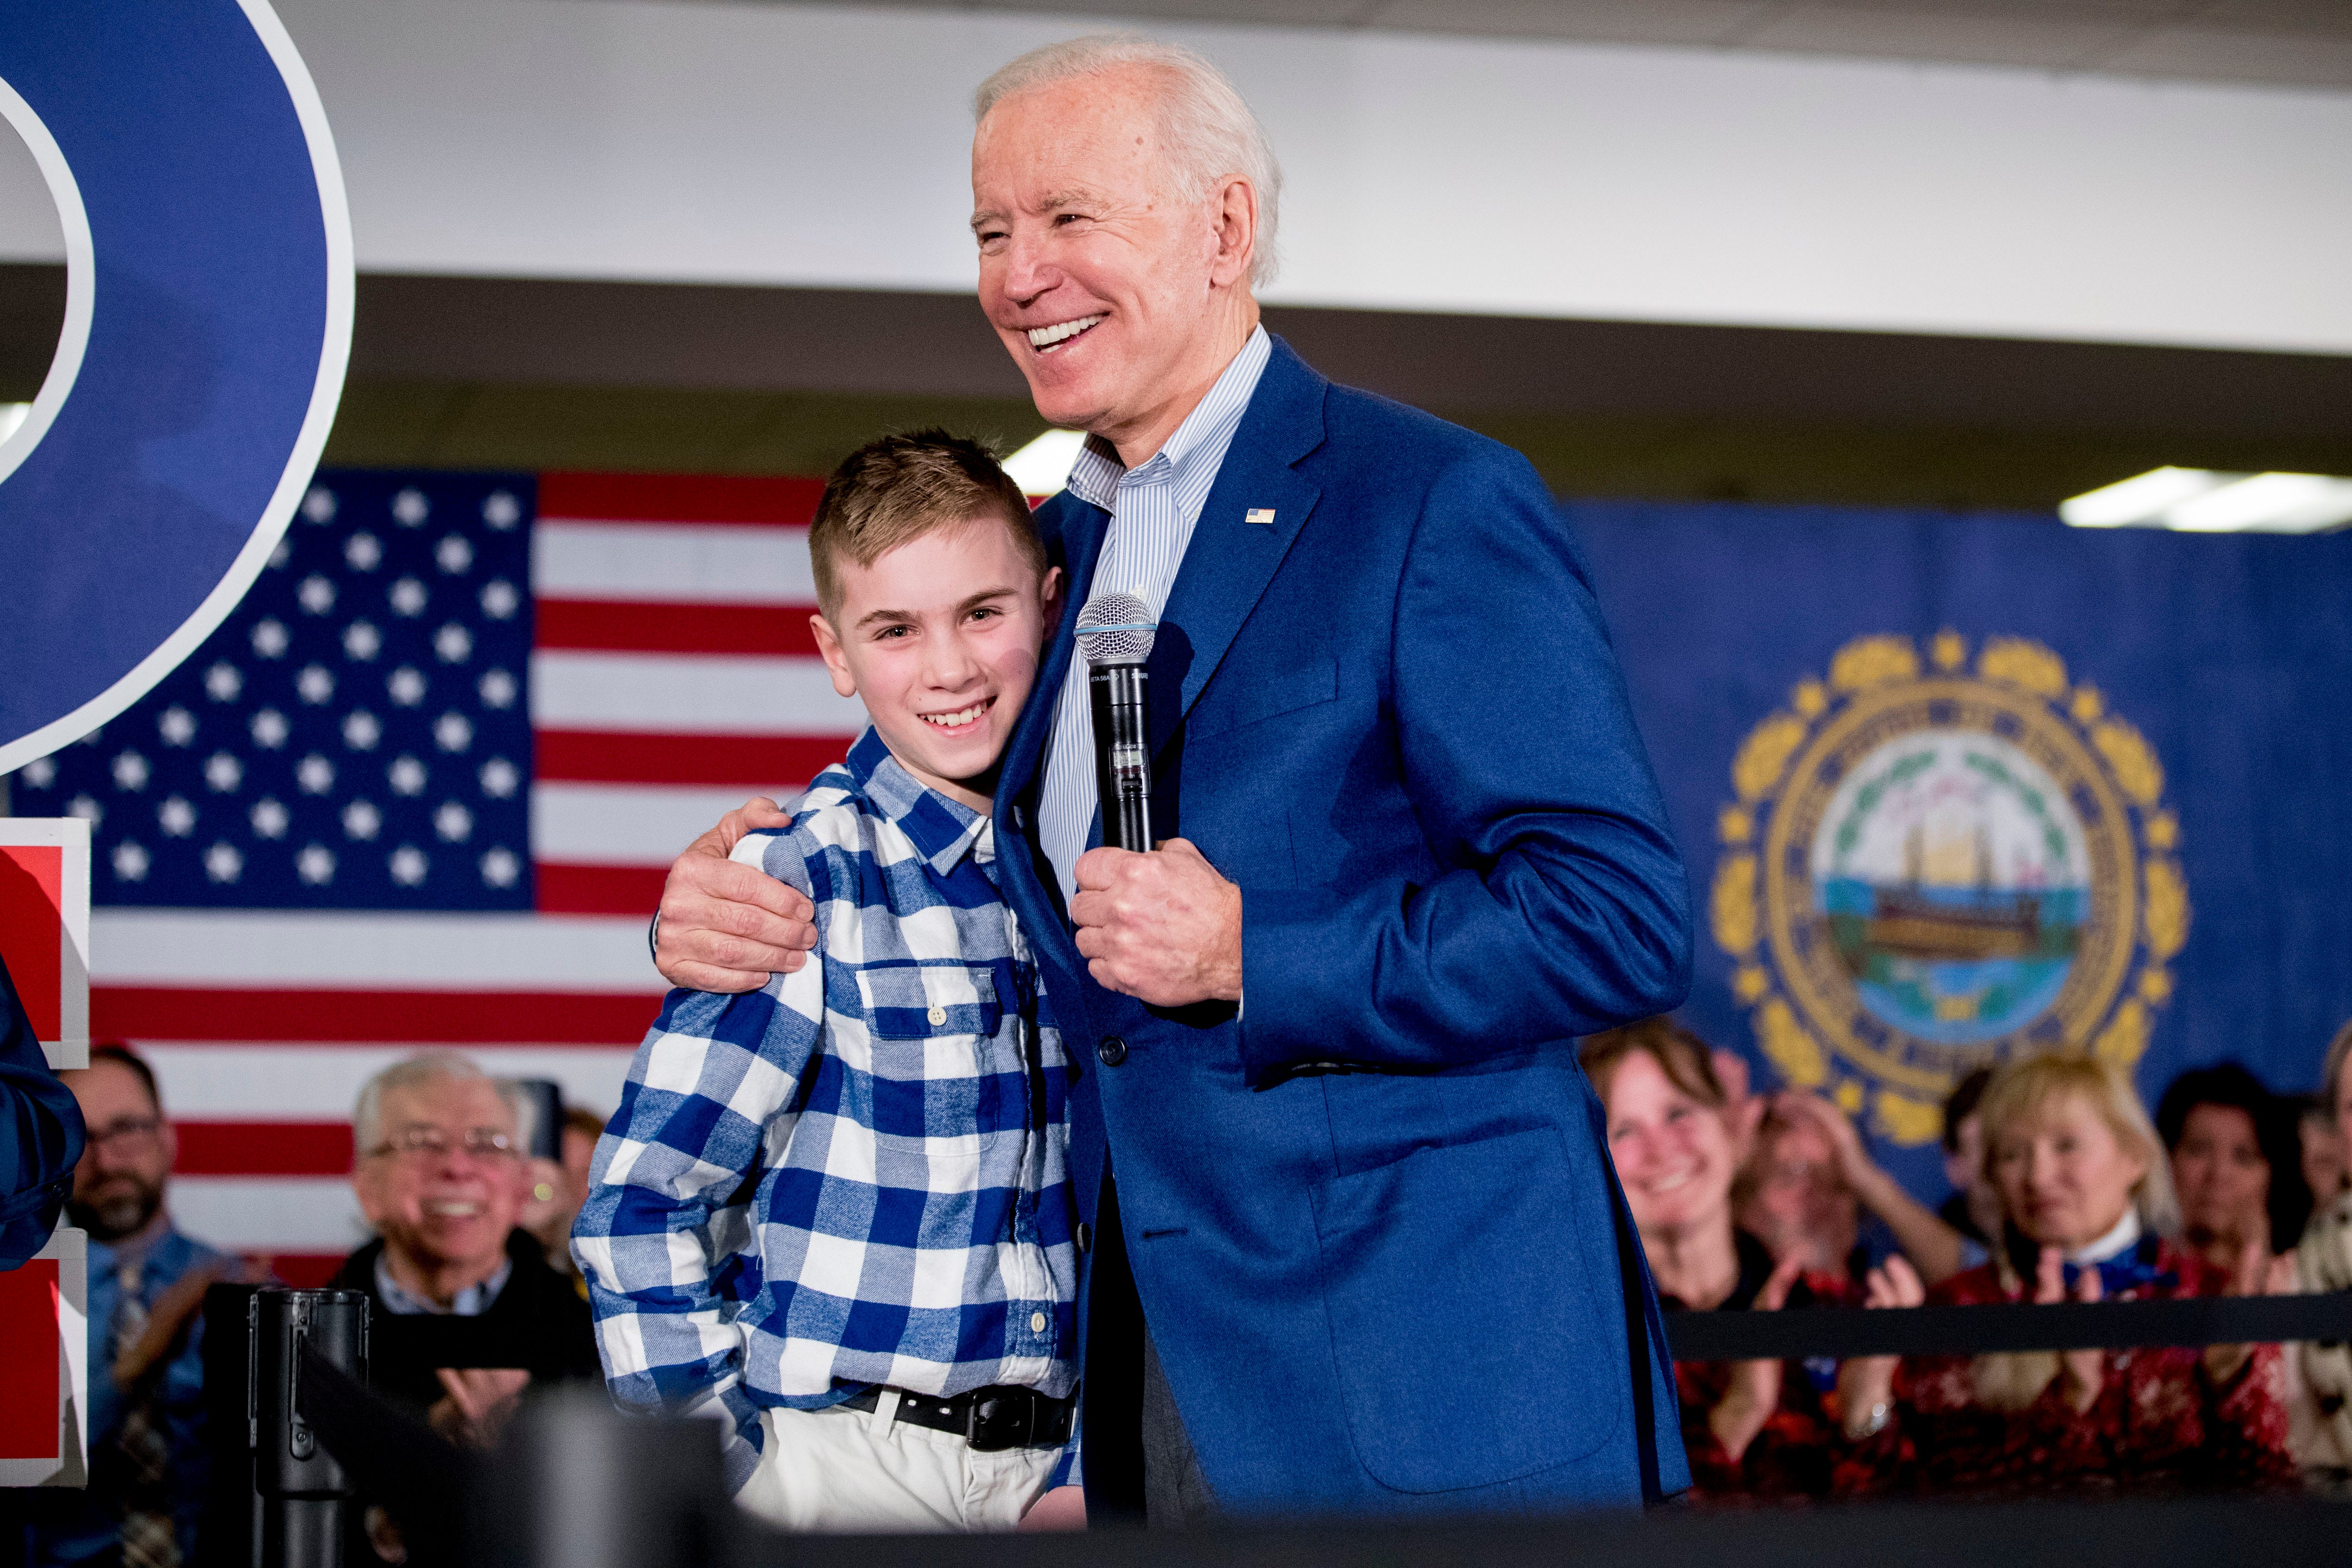 Teen who bonded with Biden over stutter delivers powerful rendition of JFK speech in inauguration special